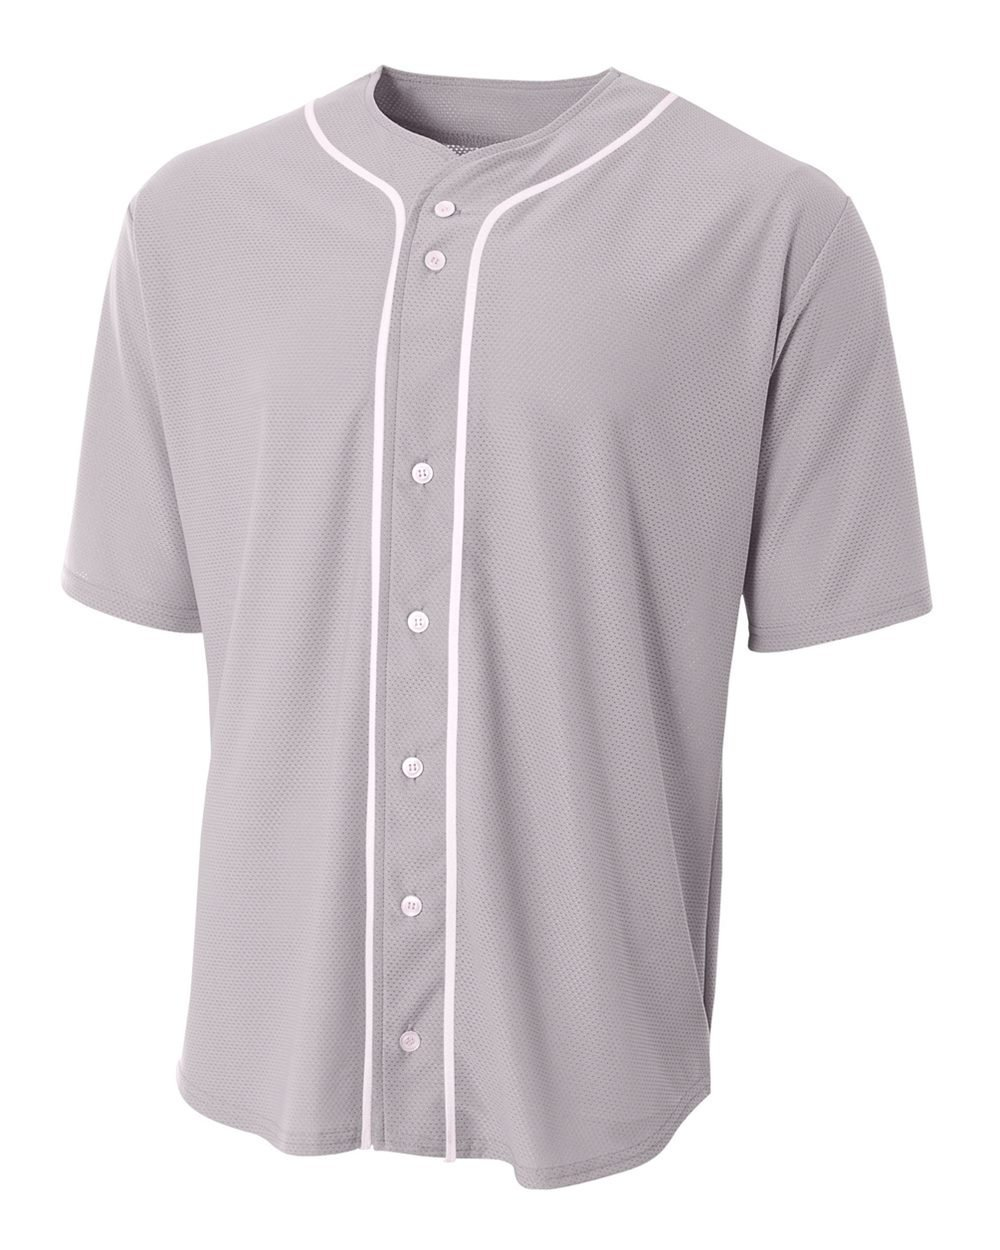 9fd60a2cb08 Get Quotations · Baseball Full Button CUSTOM or Blank Wicking Jersey (8  Uniform Colors in 10 Youth